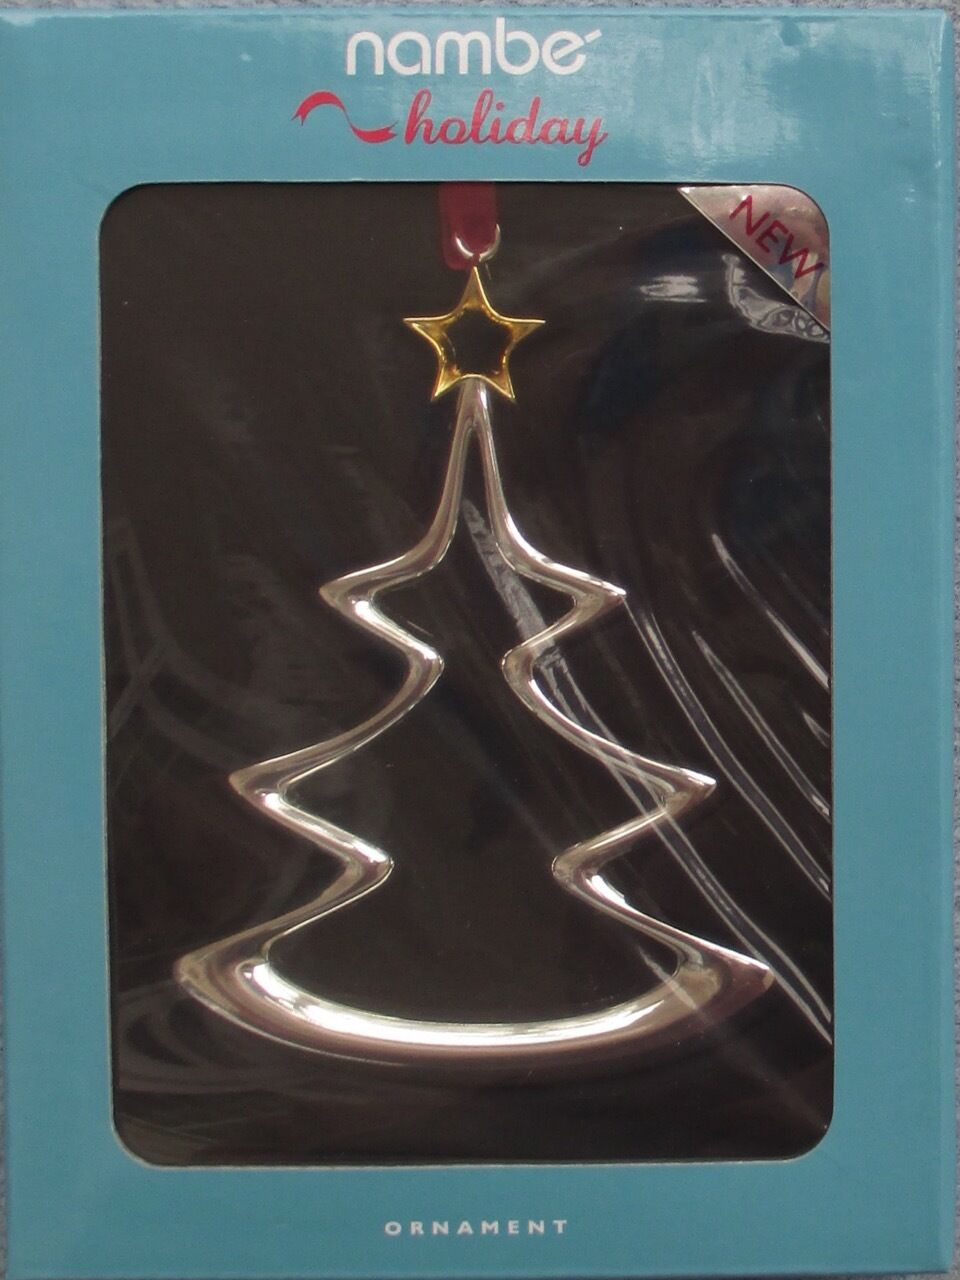 Nambe Christmas Tree Ornament Silver and Gold New in Box  2995